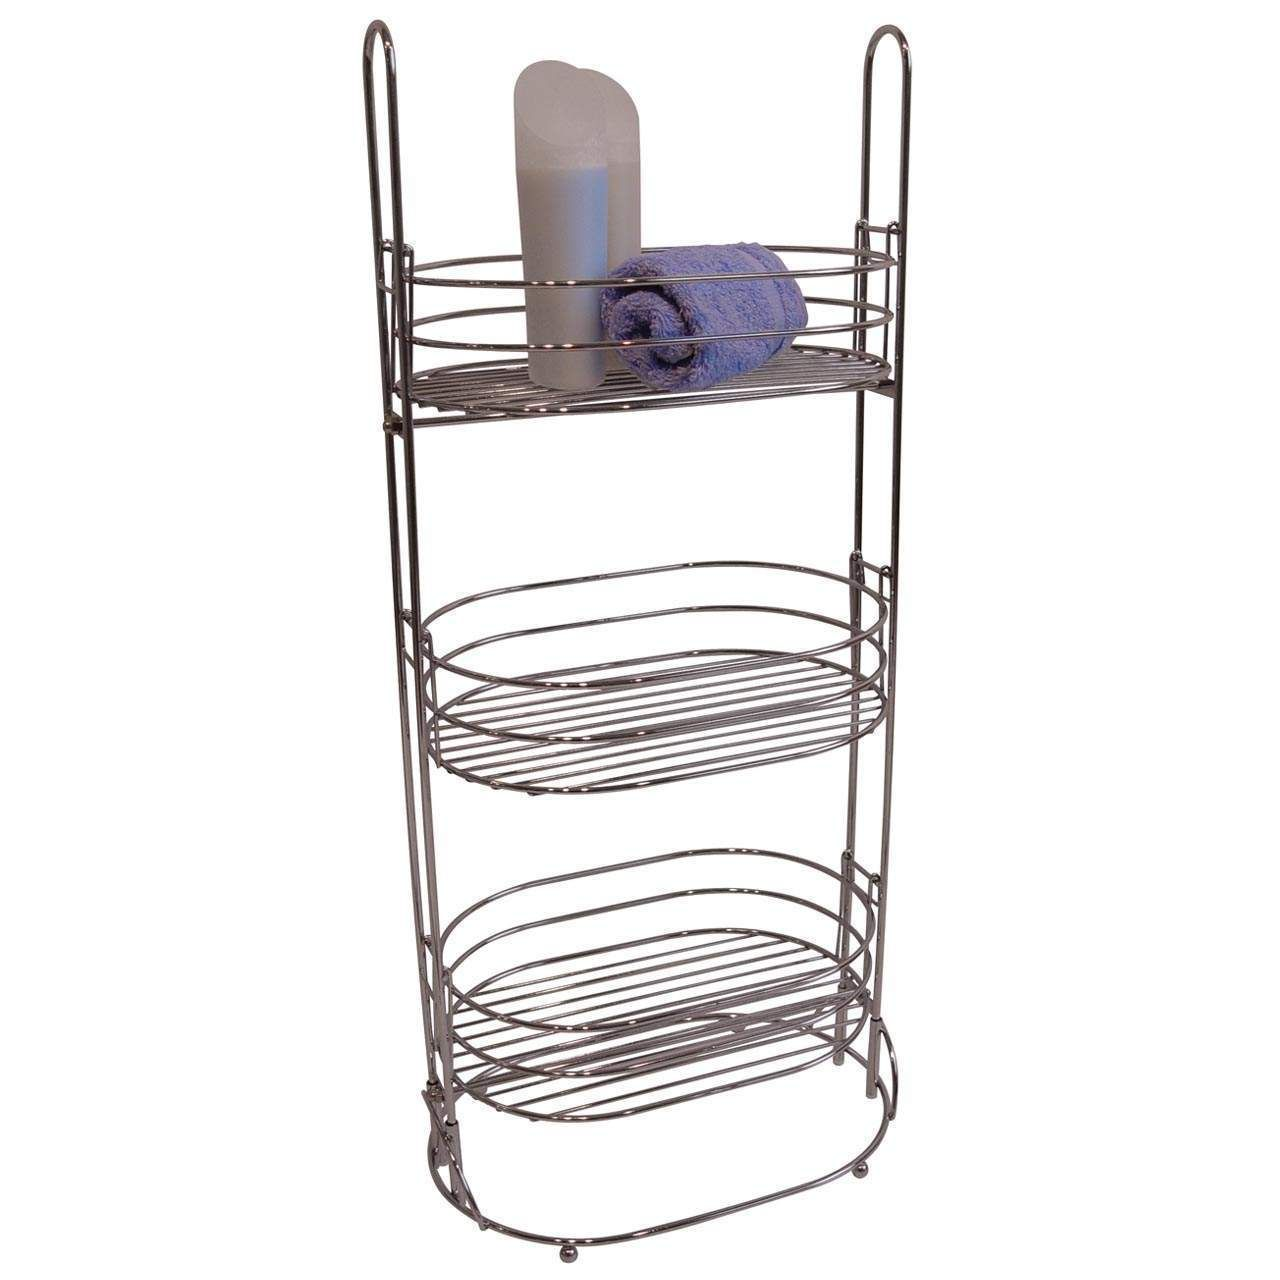 Home Furniture Accessories Chrome 3 Tier Bathroom Caddy Tidy Floor